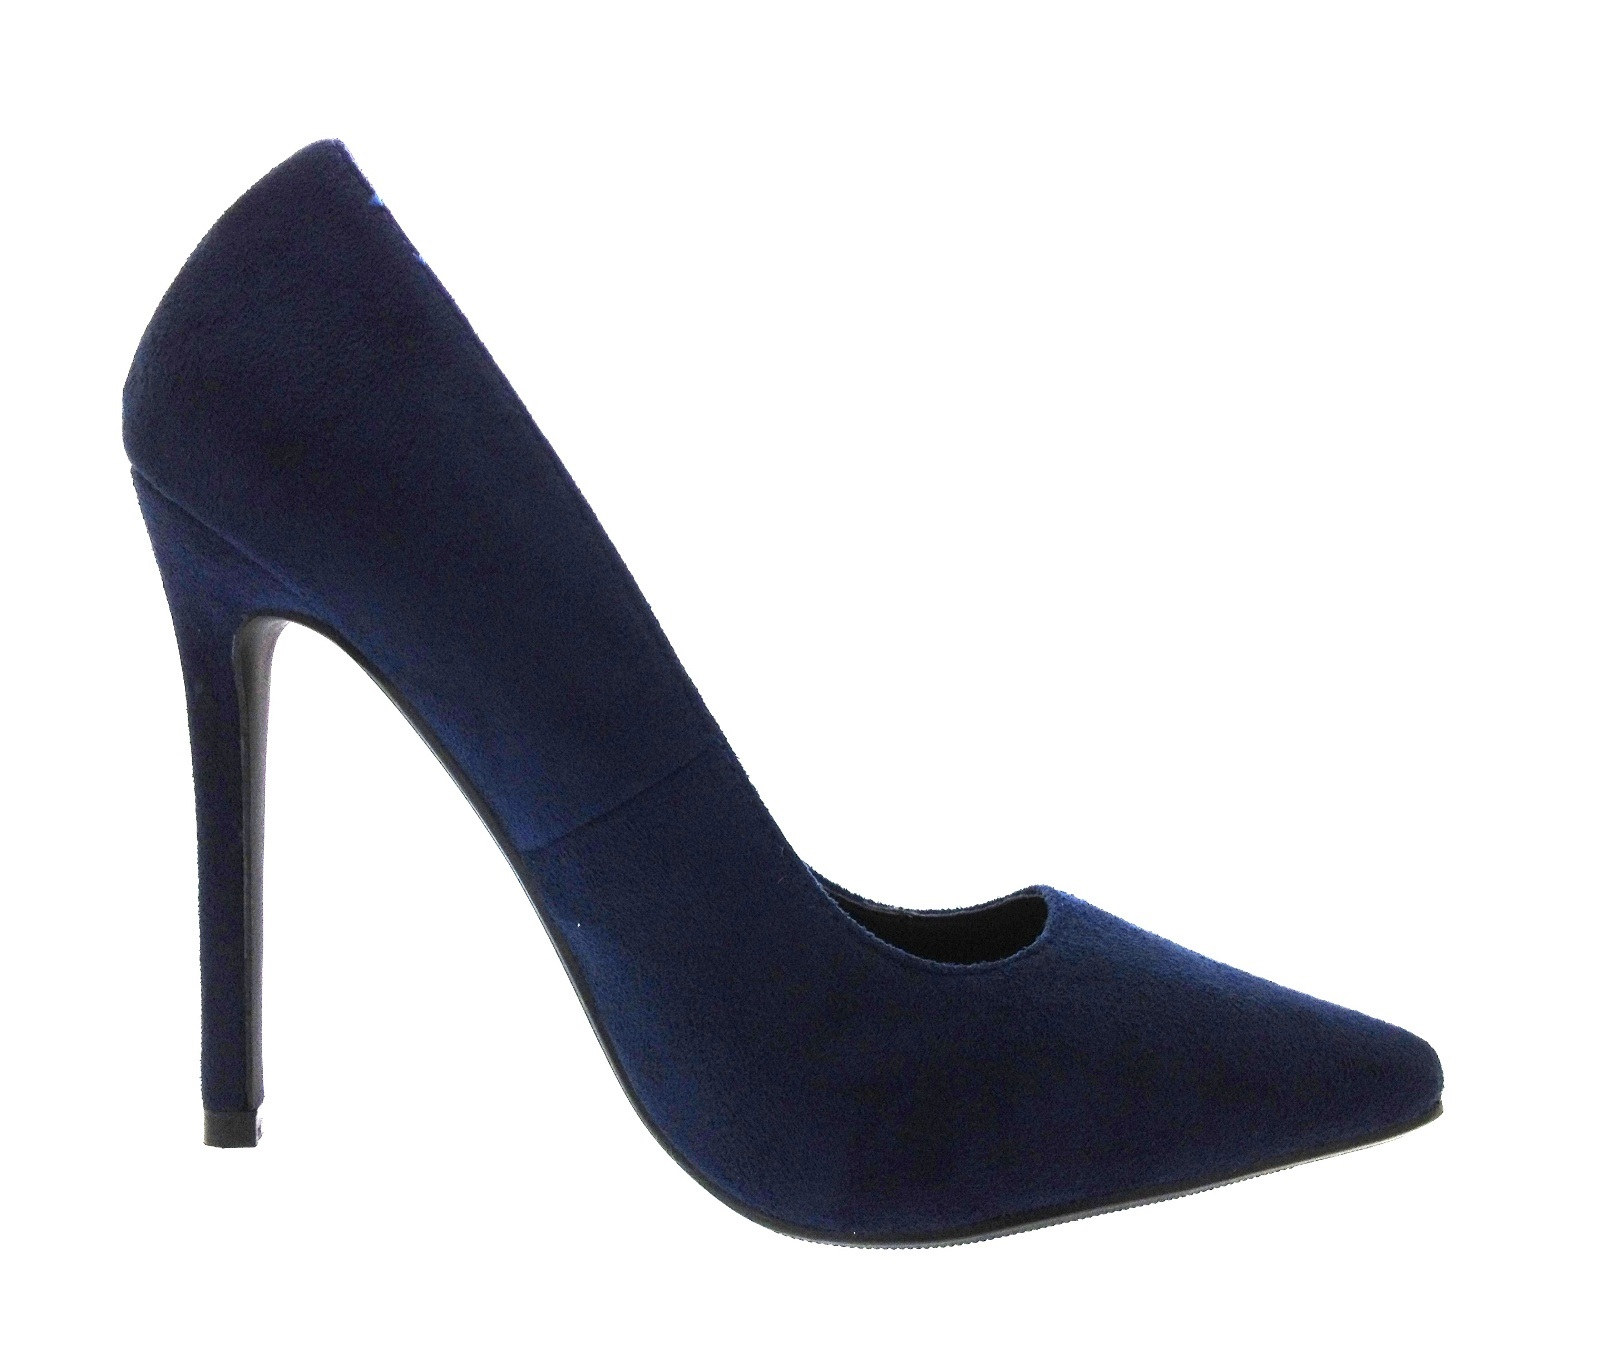 Womens Navy Heels Shoes - Is Heel